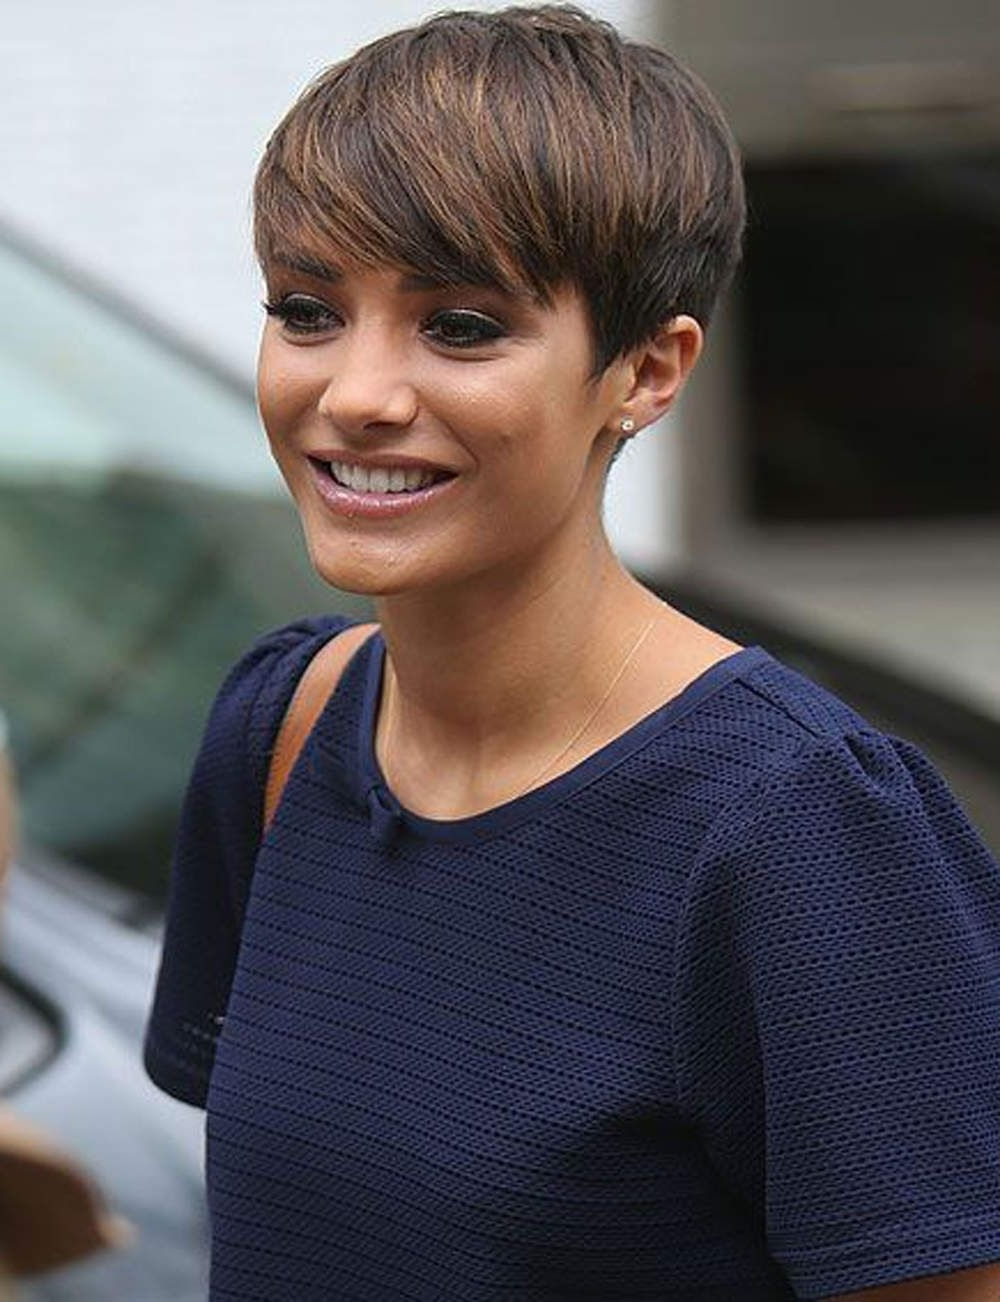 Vivacious Short Pixie Haircuts With Highlights   Hairdrome In Most Recent Pixie Hairstyles For Dark Hair (View 3 of 15)